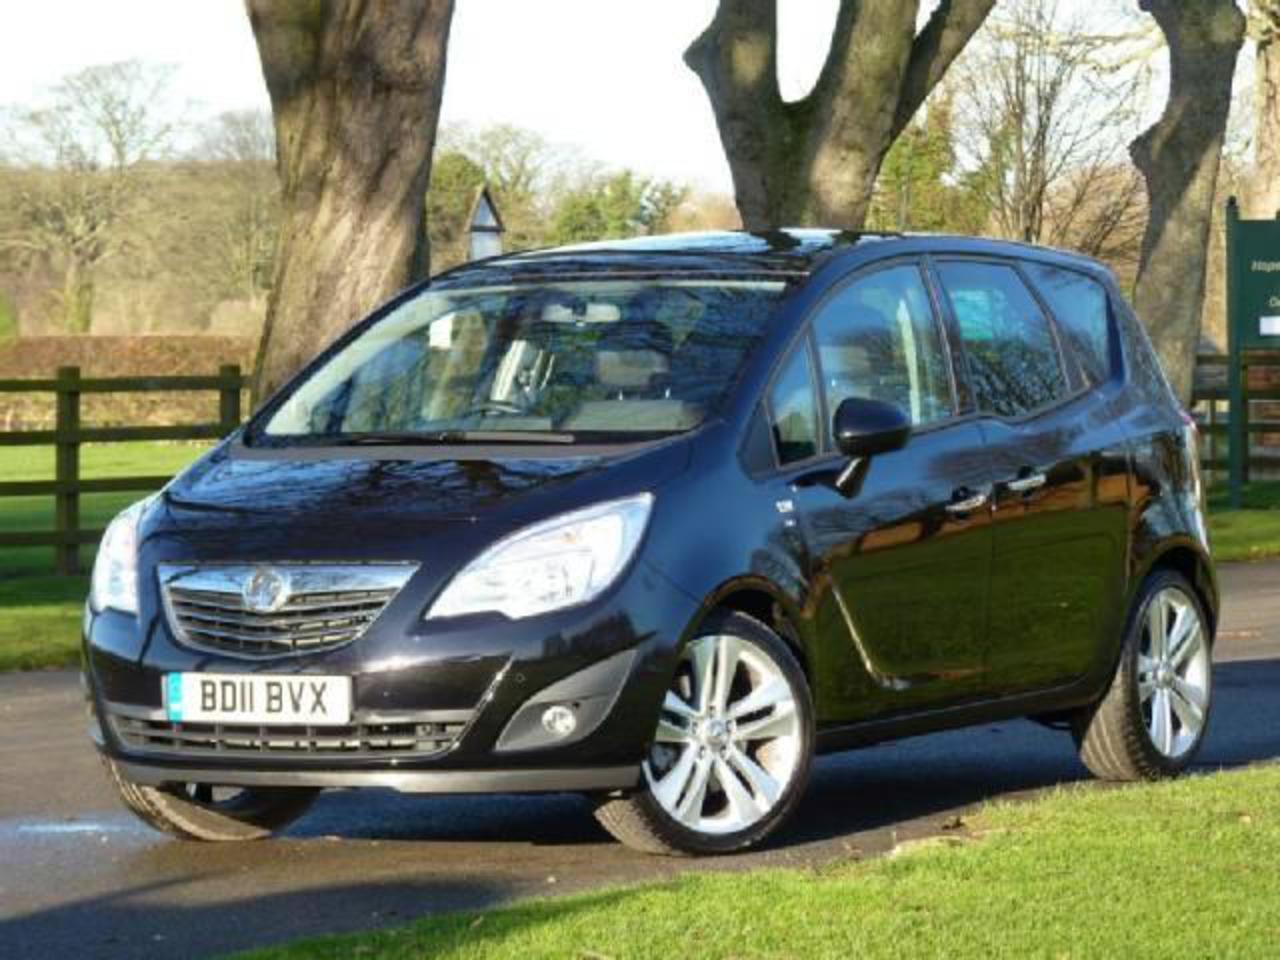 Opel Meriva 14 16V Photo Gallery: Photo #12 out of 9, Image Size ...